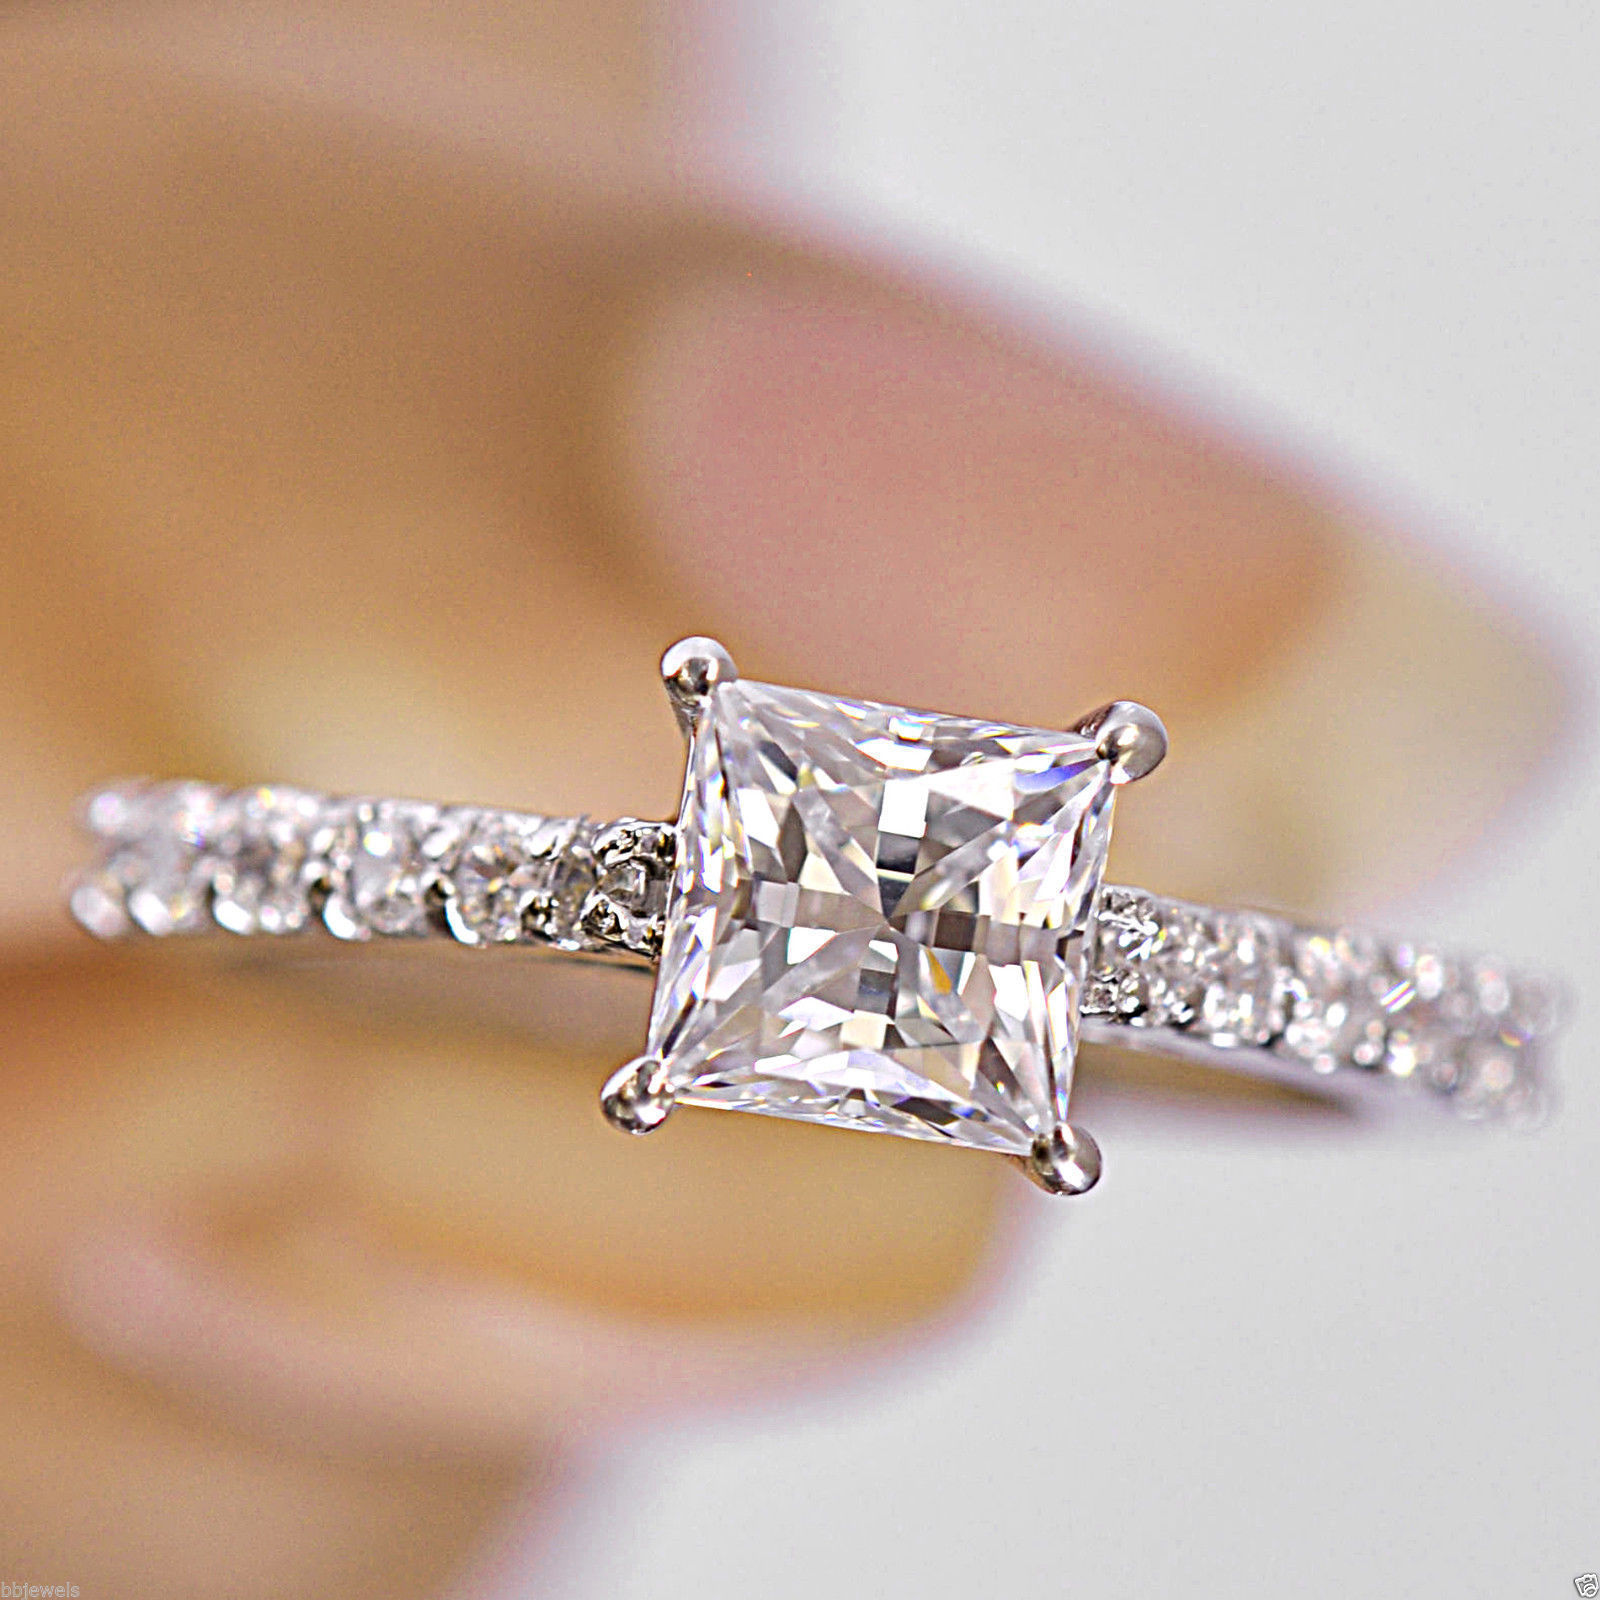 Brillaint-Princess-Cut-2-50-TCW-Solitaire-Engagement-Ring-in-14k-White-Gold-Over